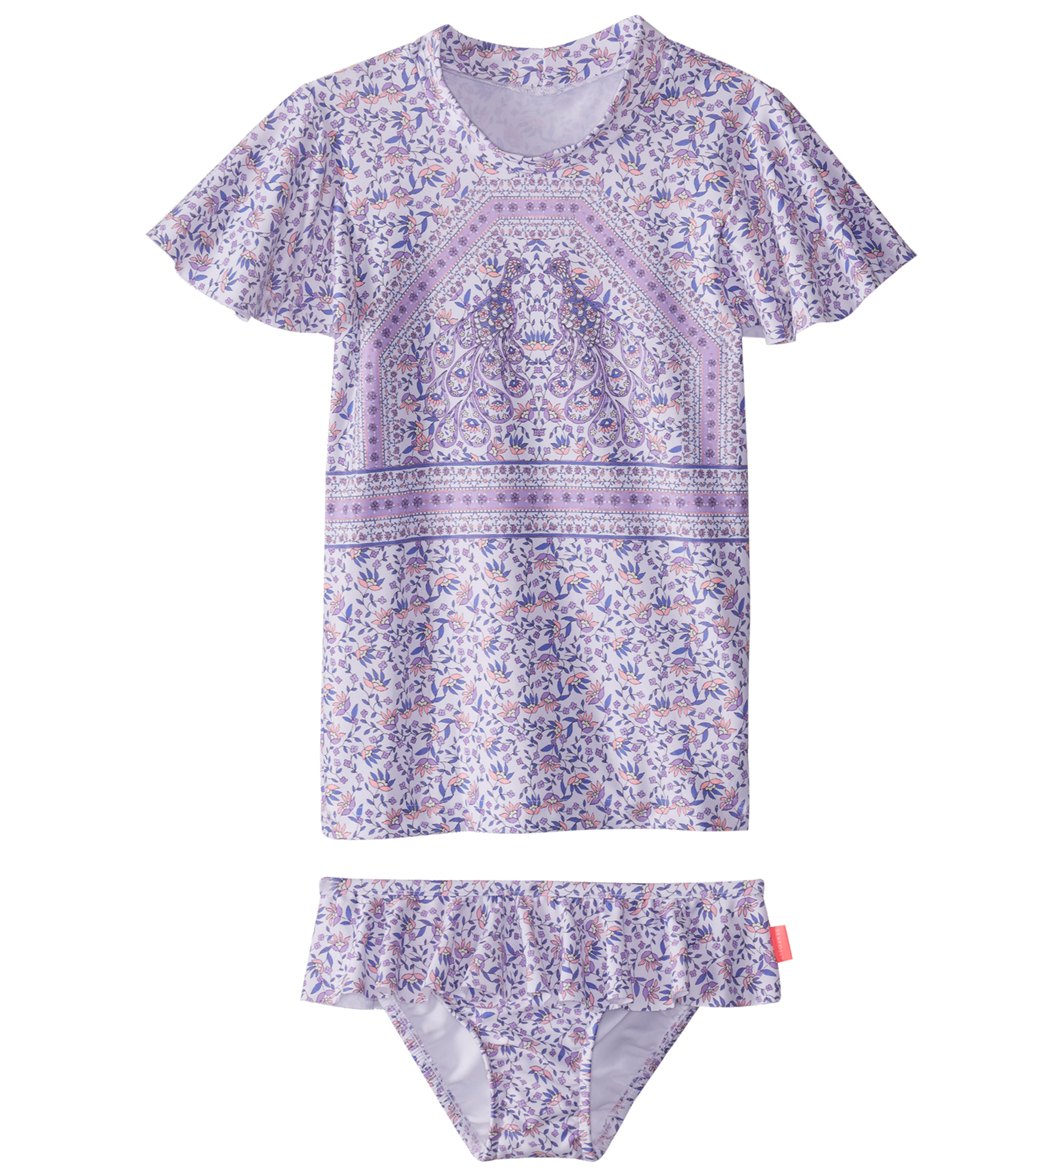 c1ffd368cc Seafolly Girls Girls' Peacock Paisley Rashie Set (Baby, Toddler, Little  Kid) at SwimOutlet.com - Free Shipping